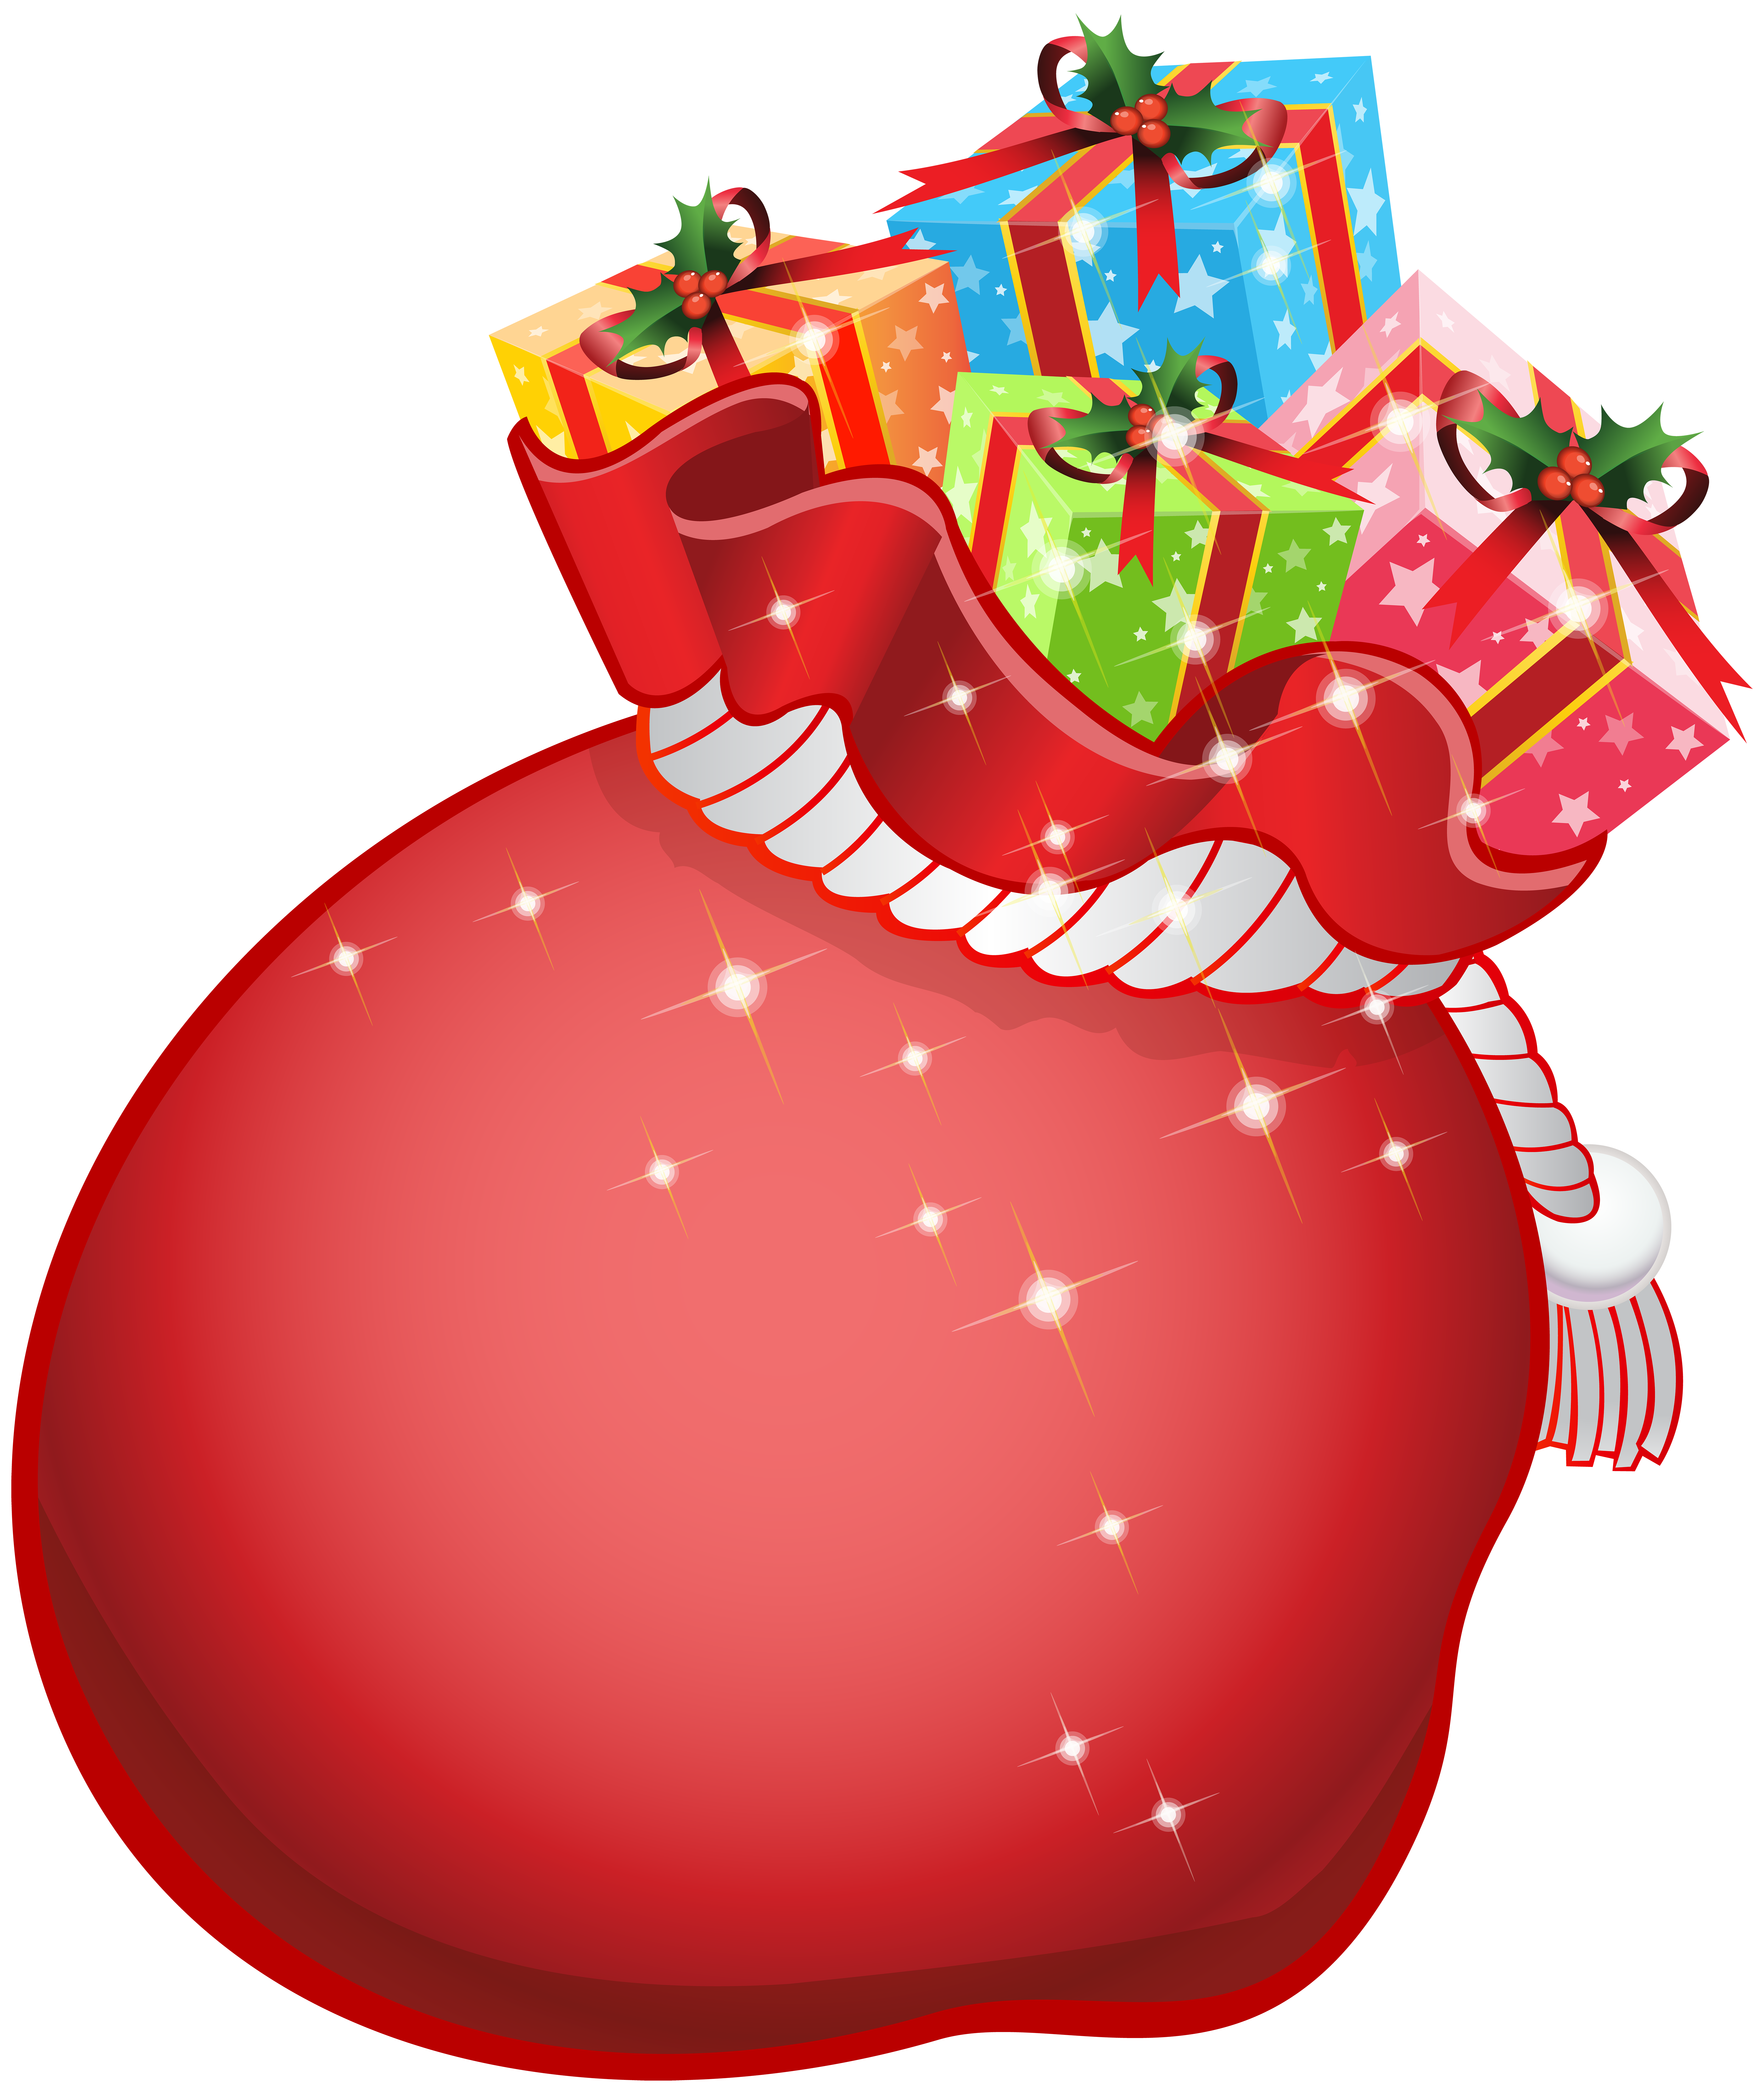 Santa with gifts transparent. Clipart present christmas gift bag